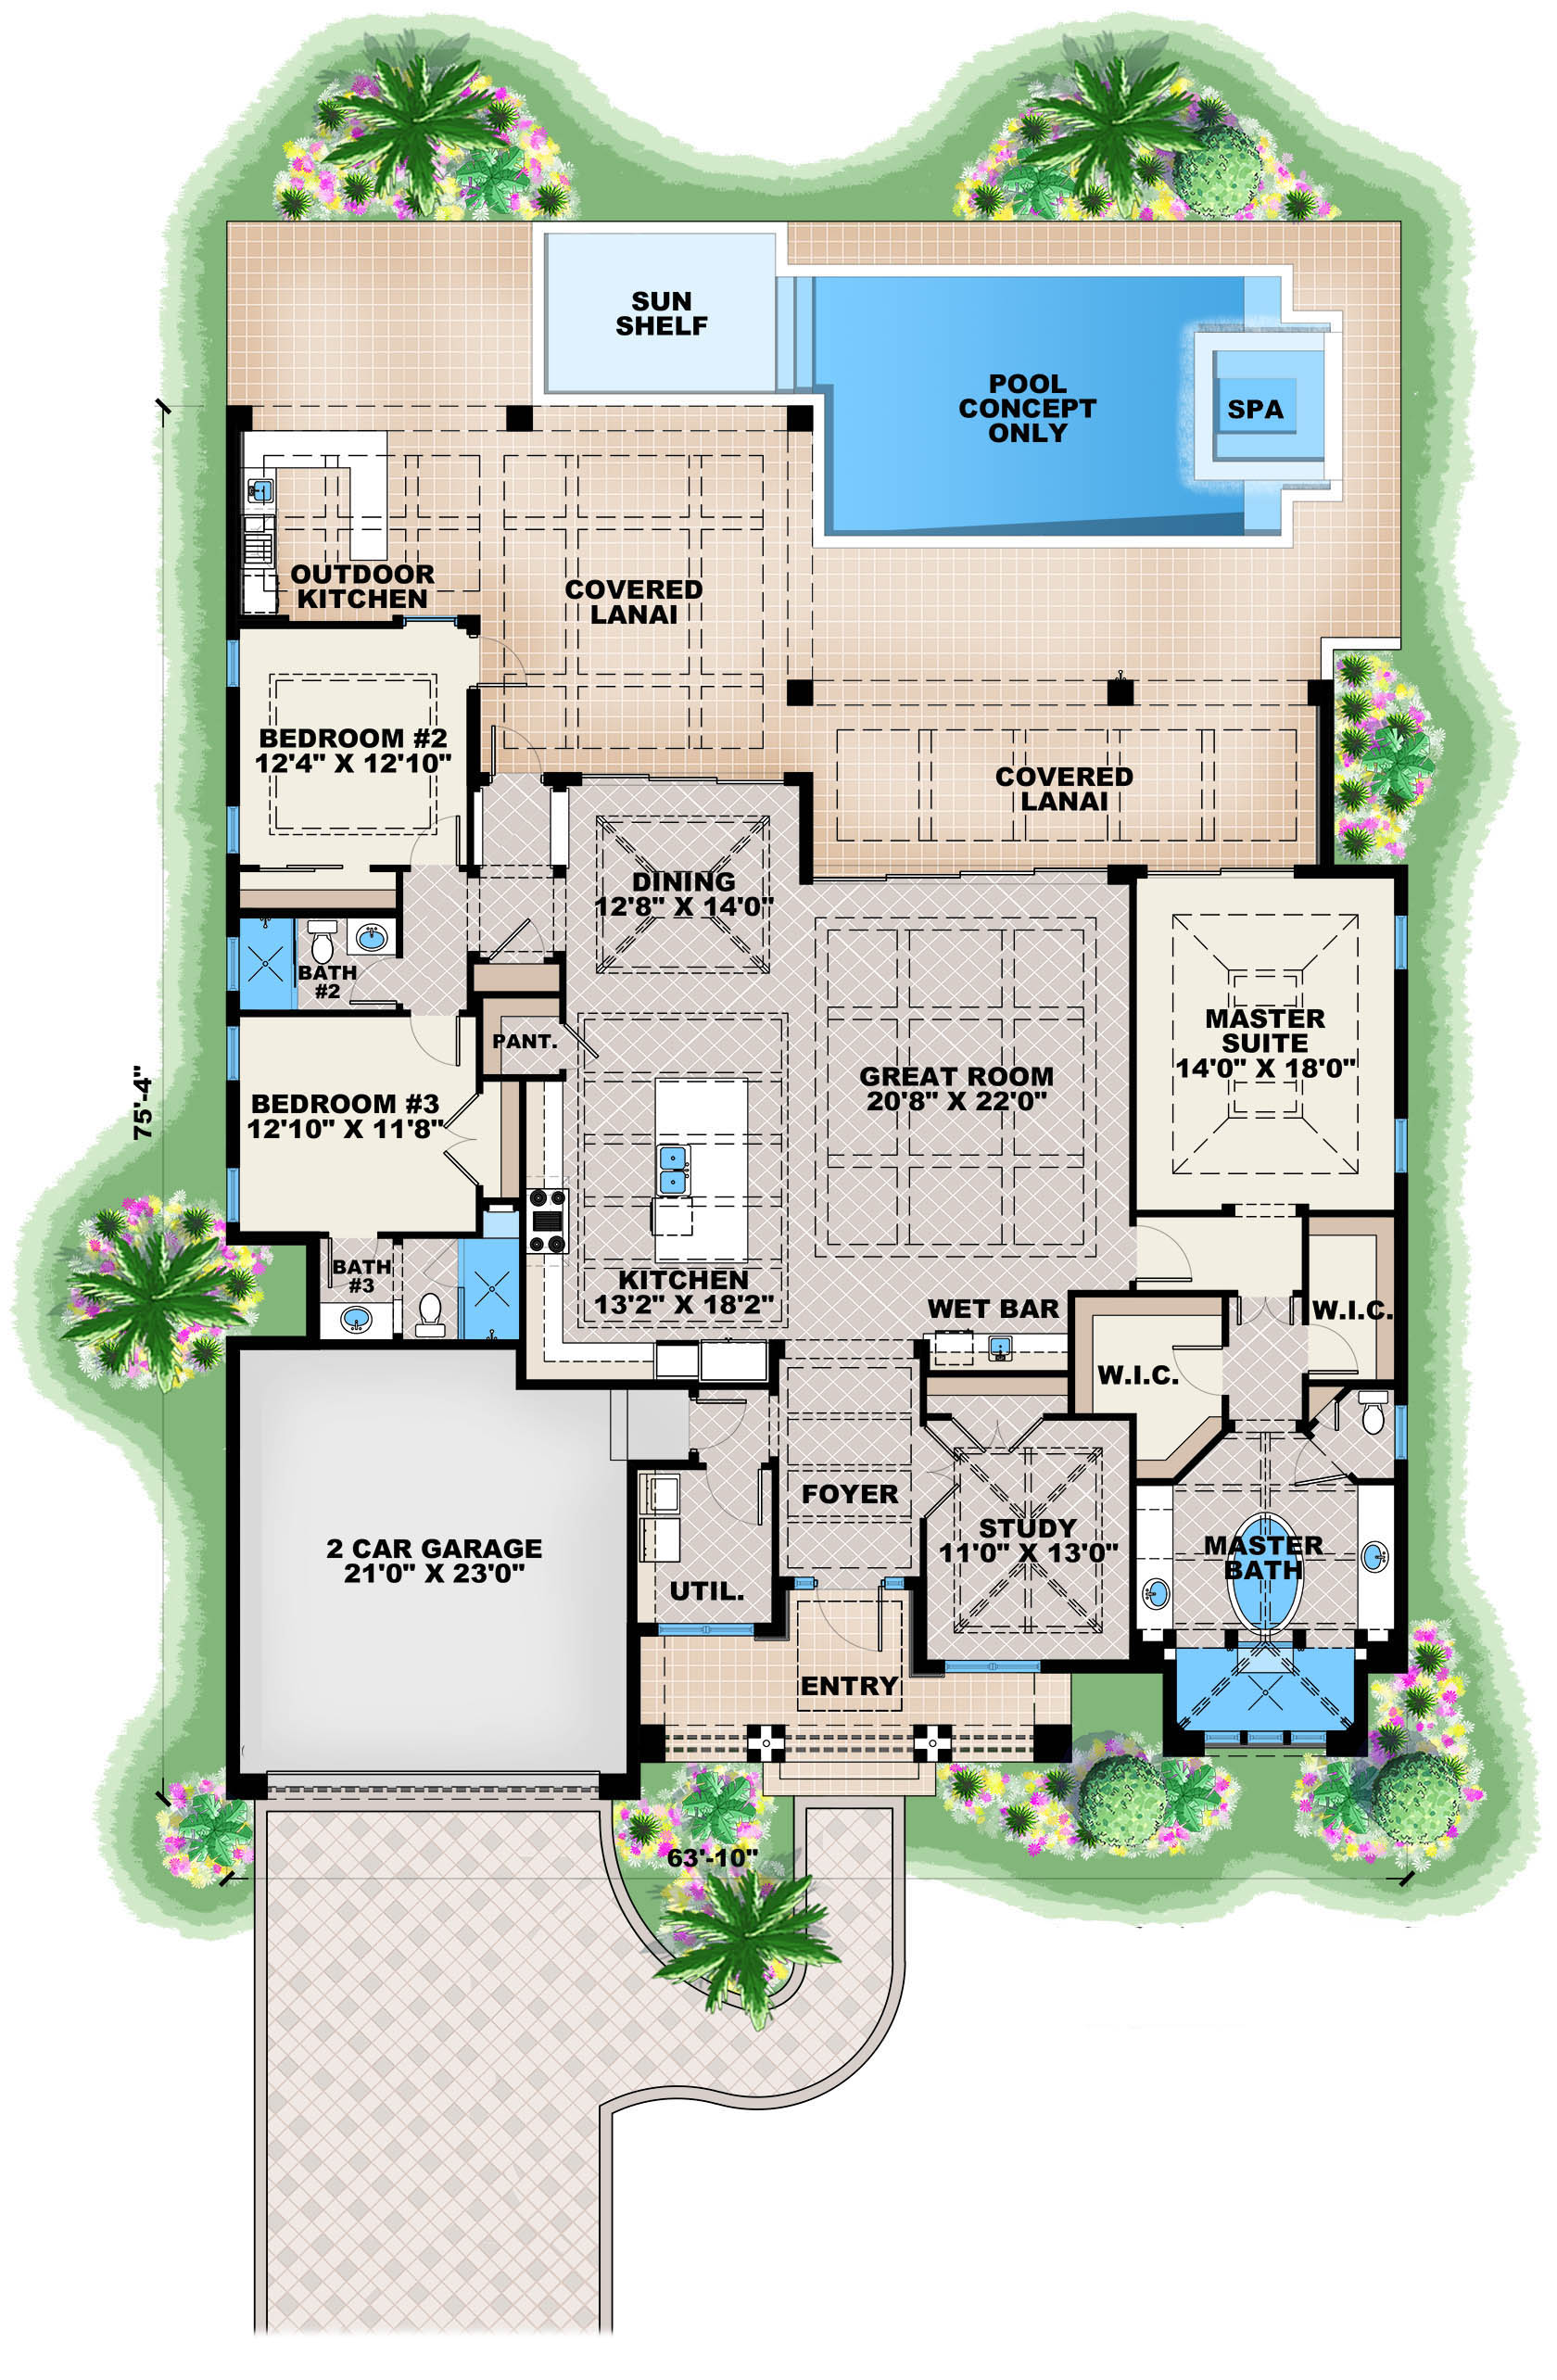 Contemporary house plan 175 1134 3 bedrm 2684 sq ft for Contemporary home design plans